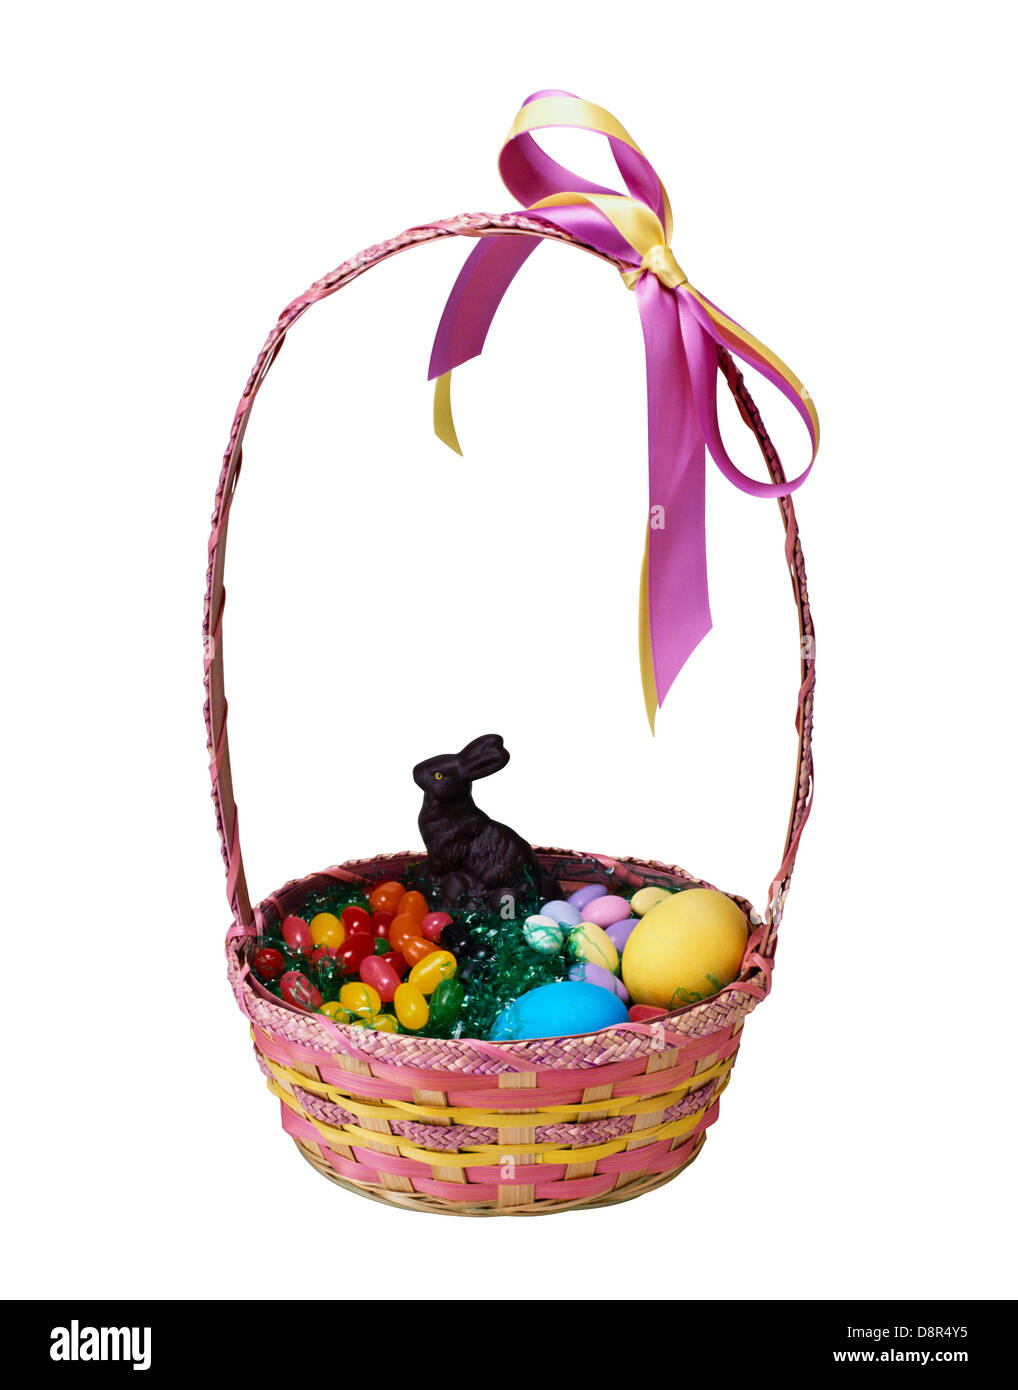 Gift Basket Bow Stock Photos & Gift Basket Bow Stock Images - Alamy